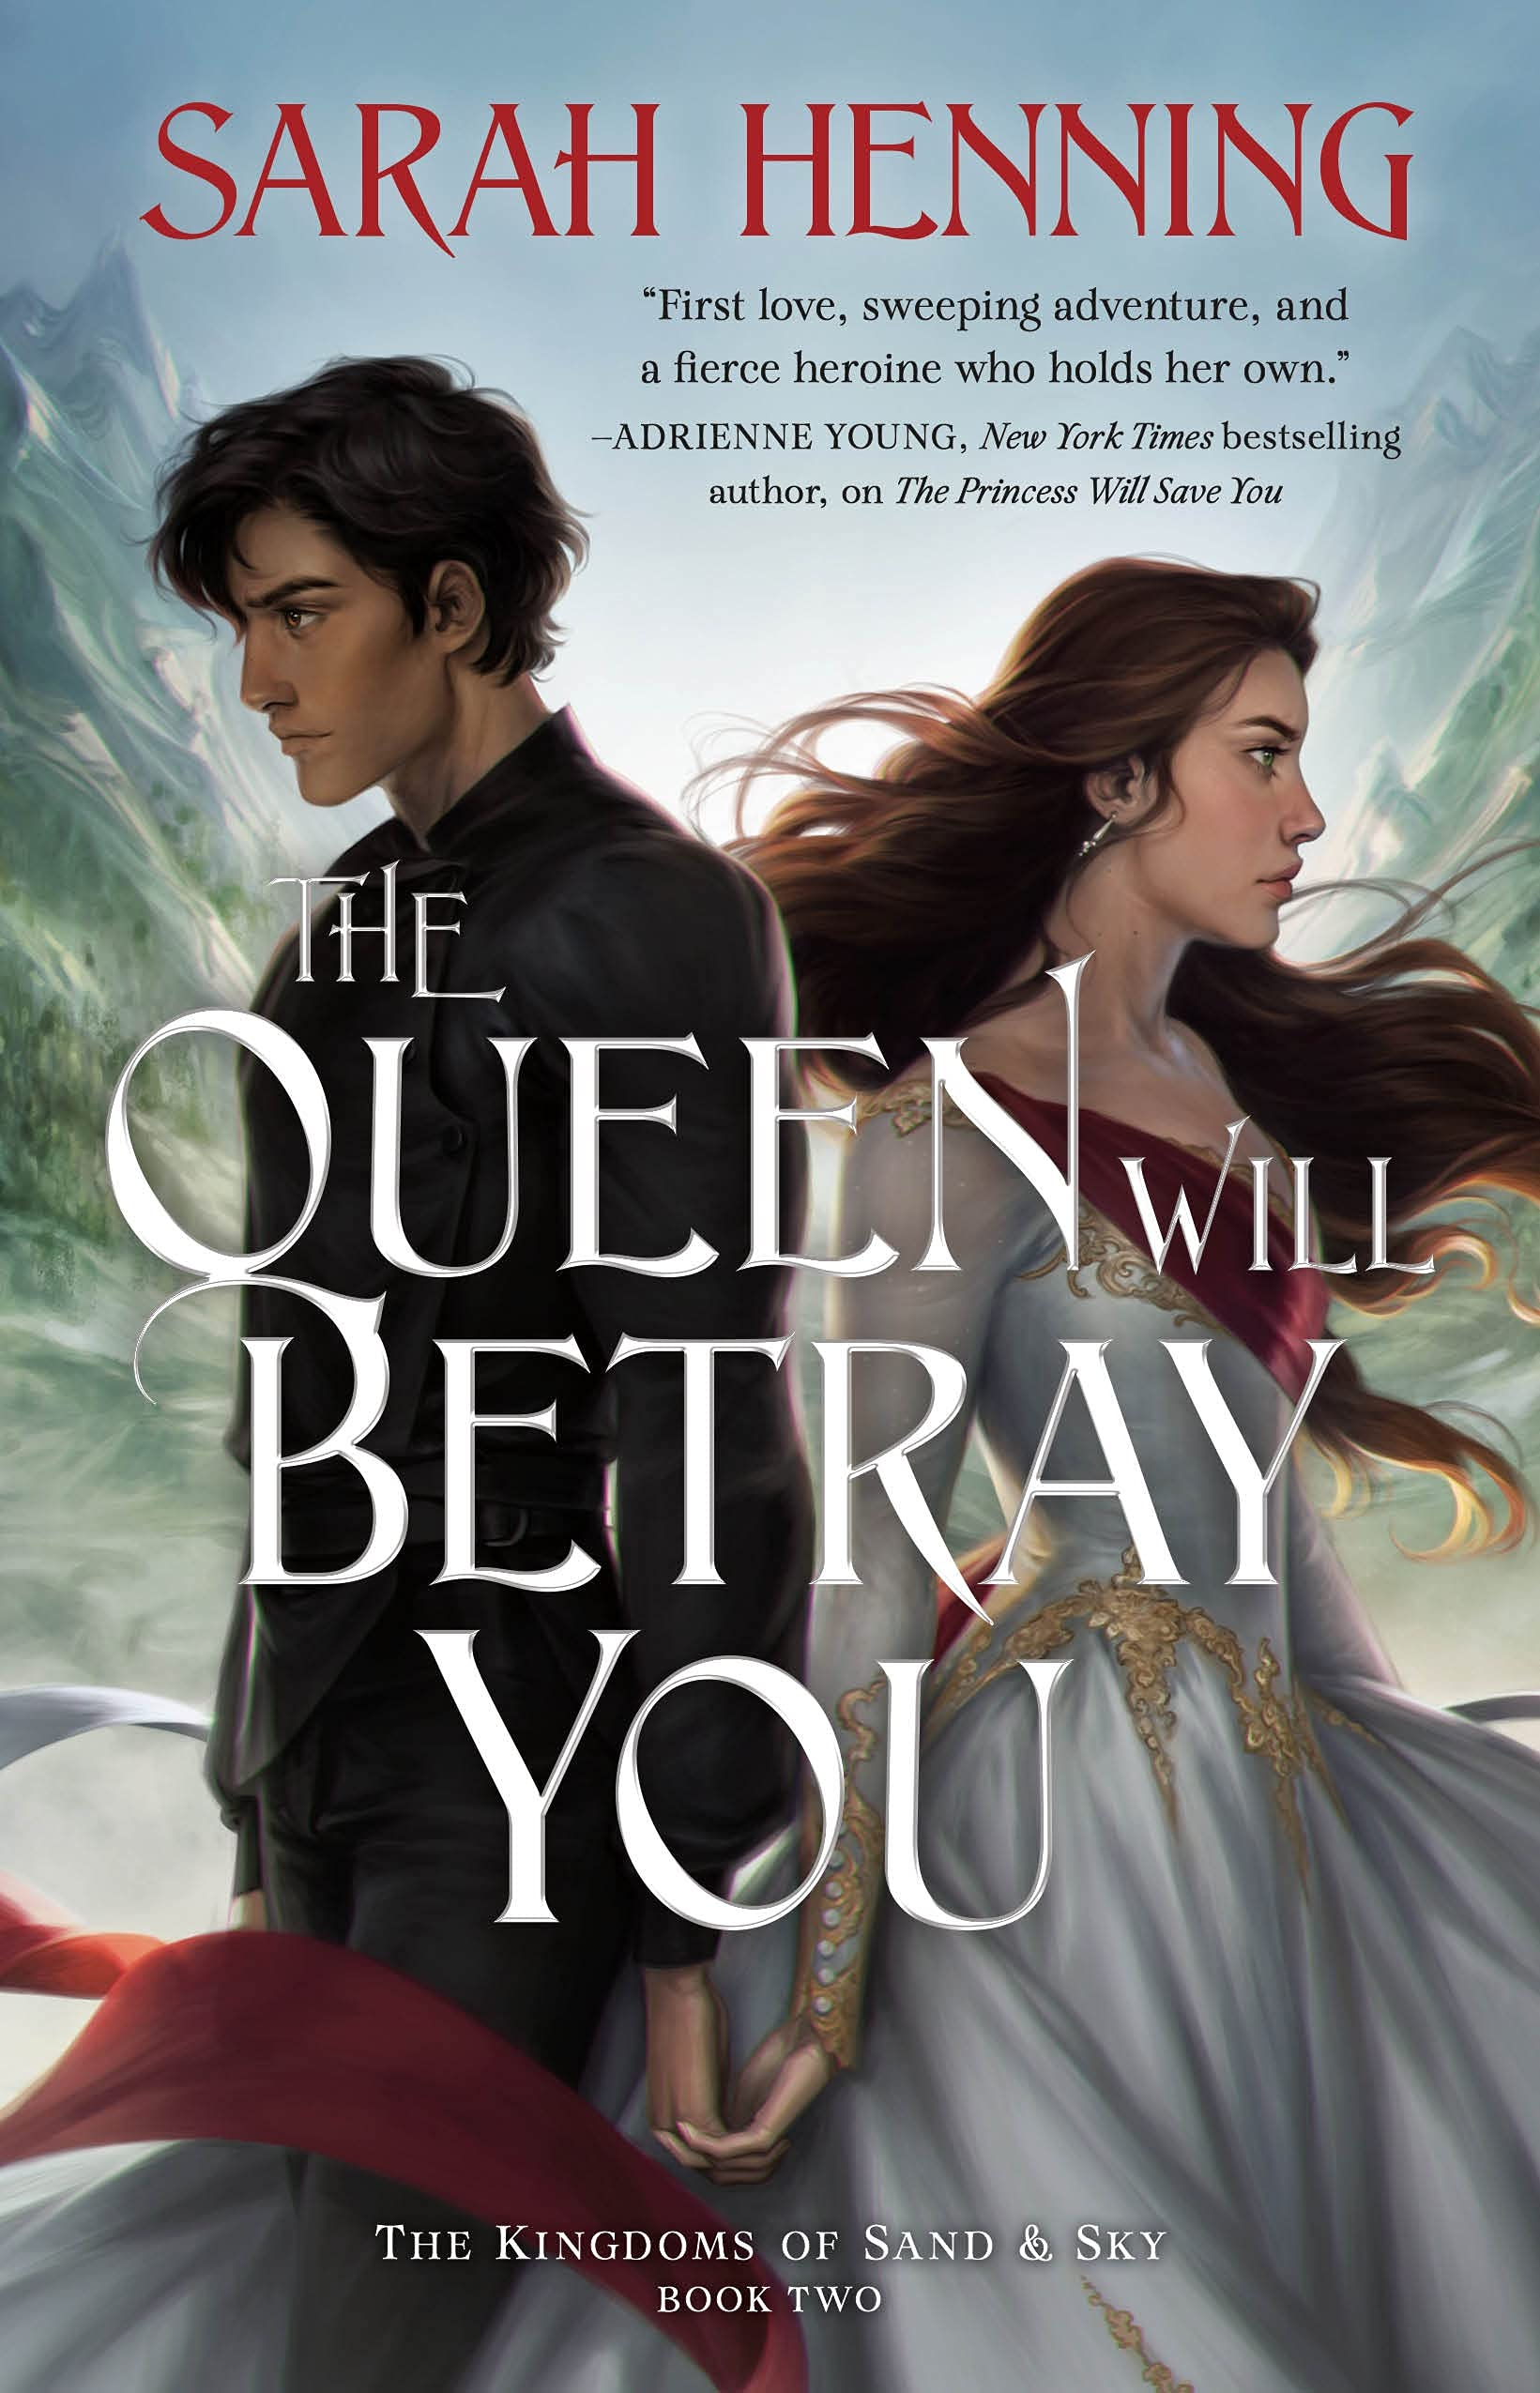 cover for sarah henning's 'the queen will betray you'. It protrays amarande in a white dress facing right and luca in a dark suit facing left. Their backs are to each other, they look away from each other but their hands are linked.